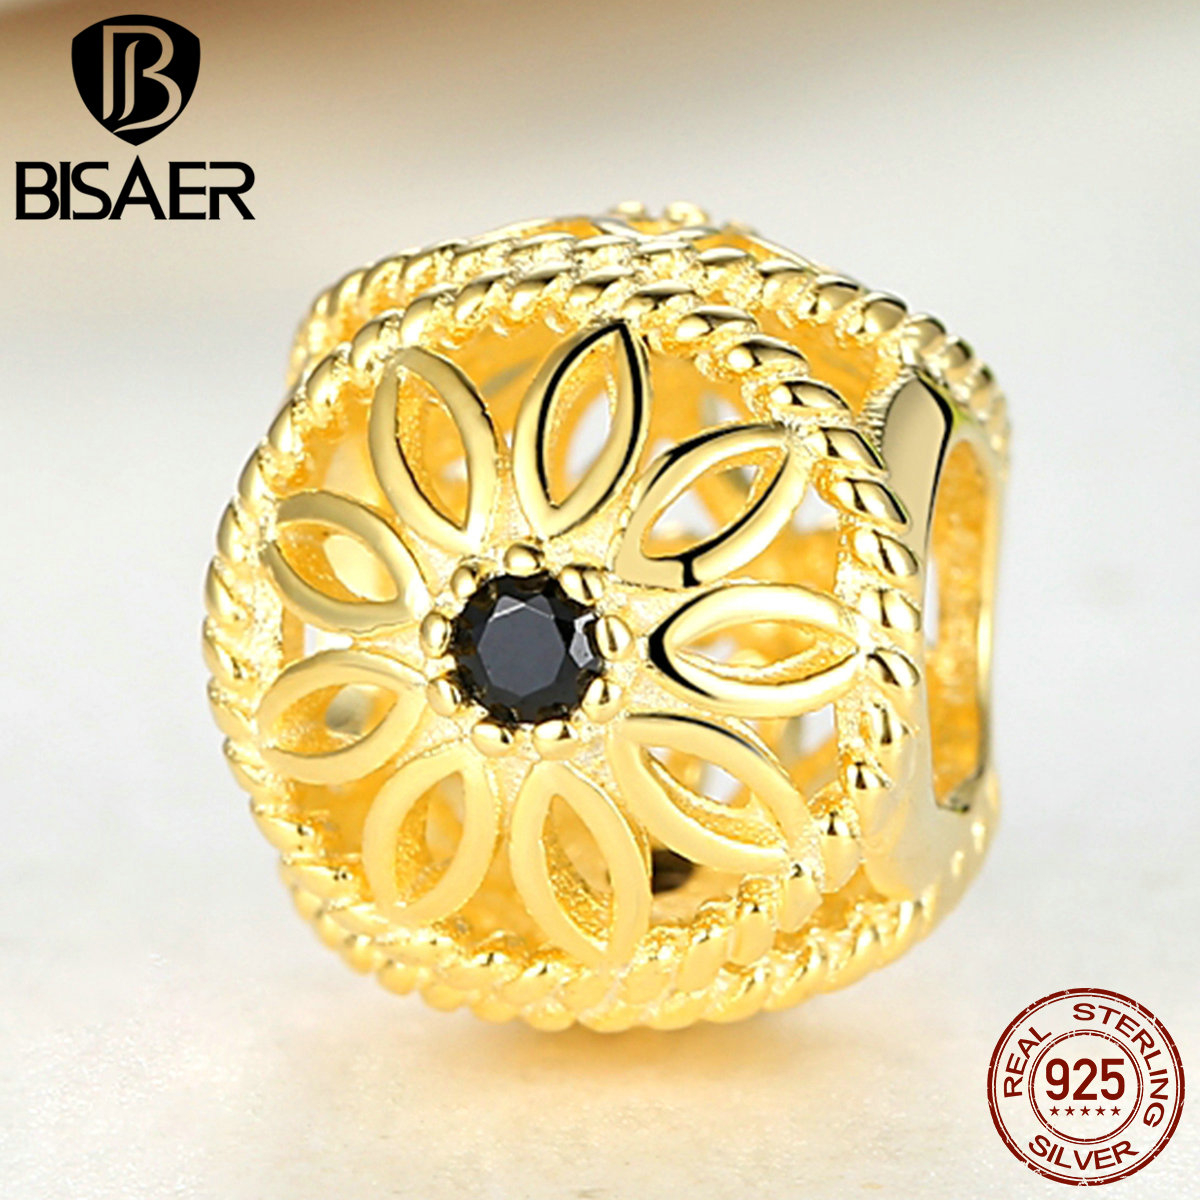 BISAER 925 Sterling Silver Black Spinel 14K Gold Floral Openwork Charm Bracelet Jewelry Accessories(China (Mainland))